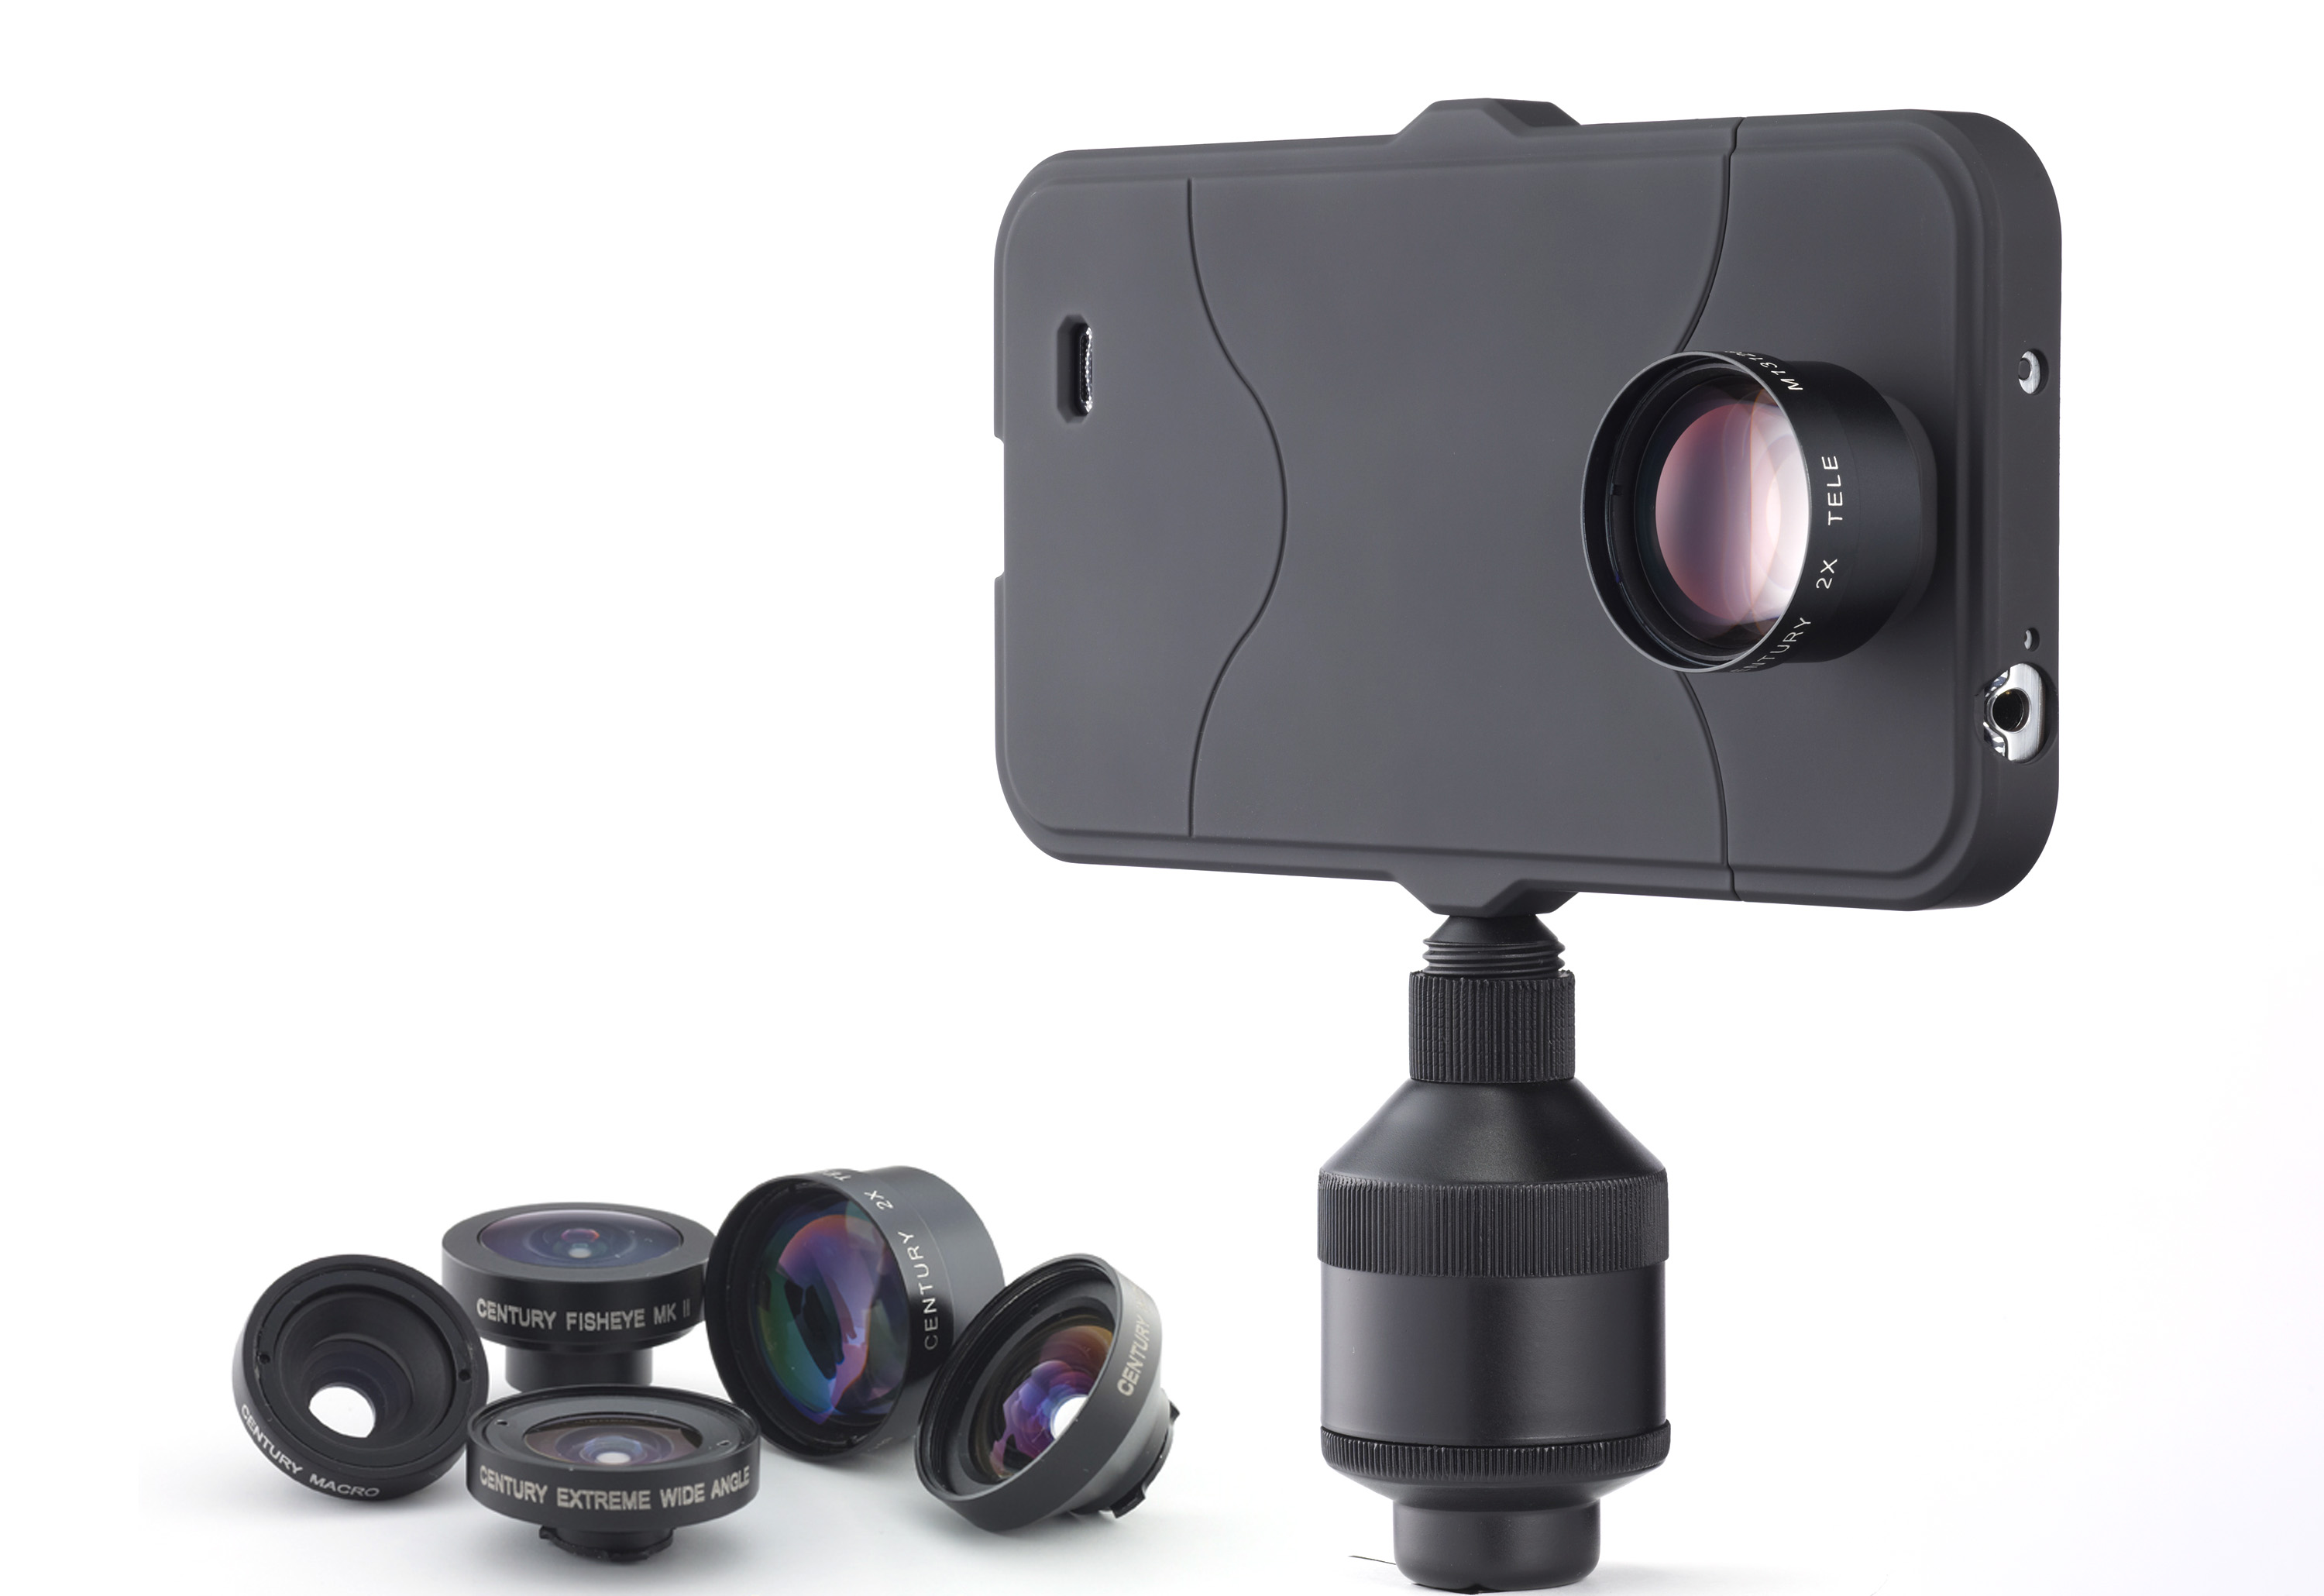 iPro Lens System Now for iPhone 5, 5S, 4/4S, Galaxy S4, & iPads